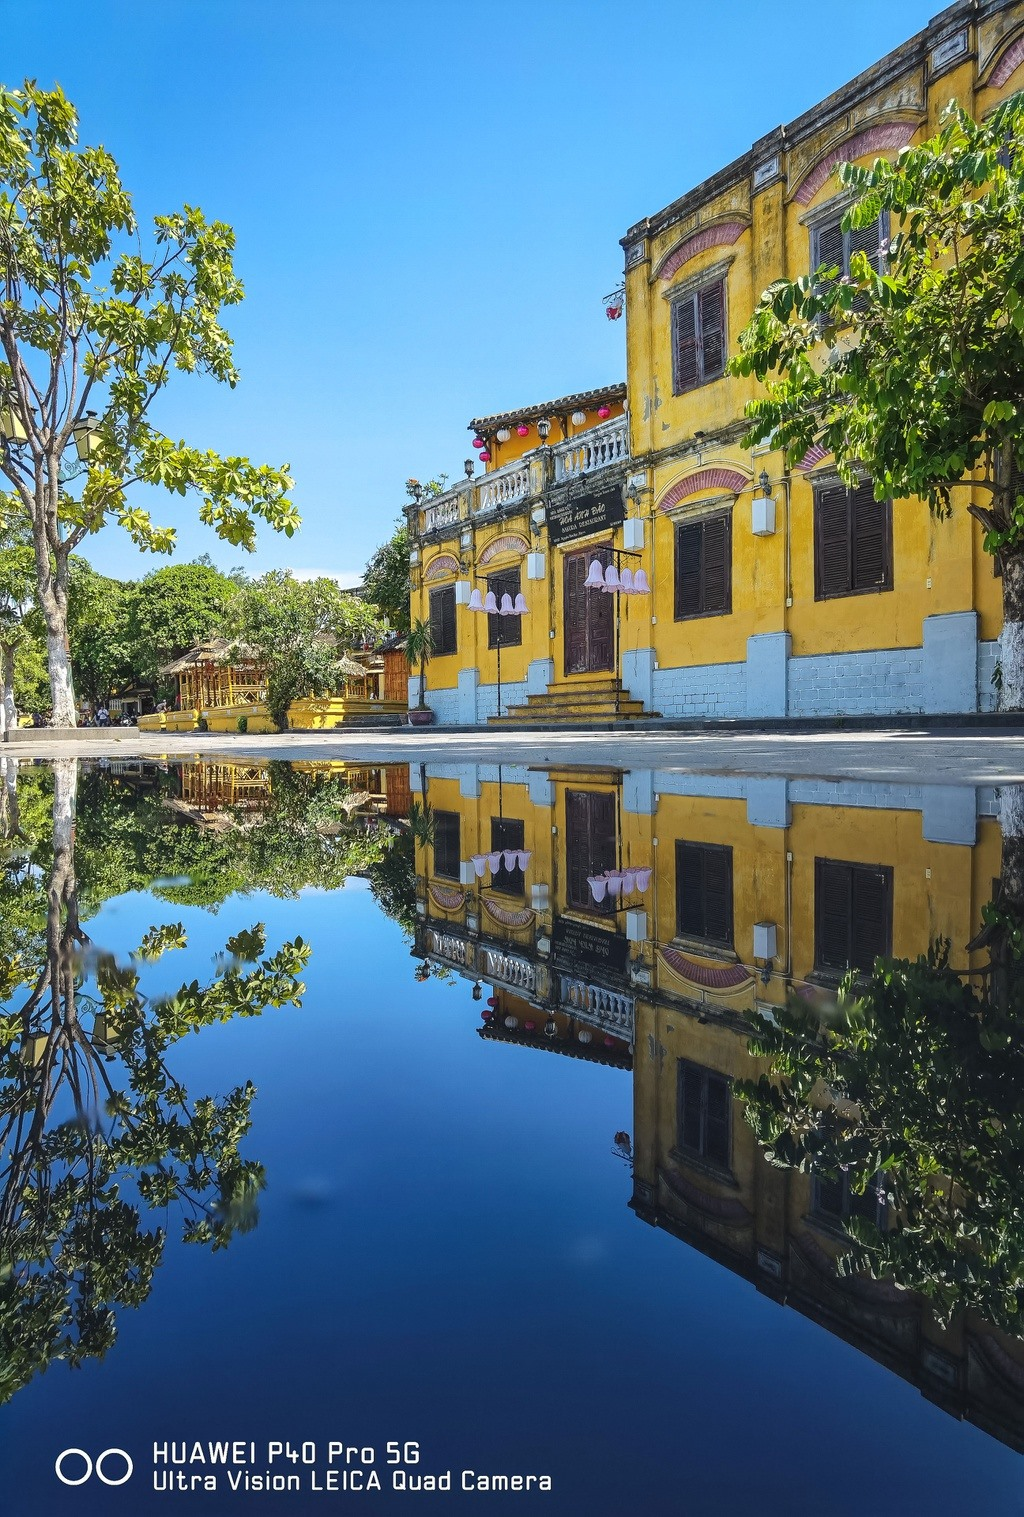 Hoi An in summer appears to be more dynamic and energetic. So it encourages visitors to explore everywhere in the city, tasting as many specialties as possible and enjoying the fresh atmosphere there. Photo: newzings